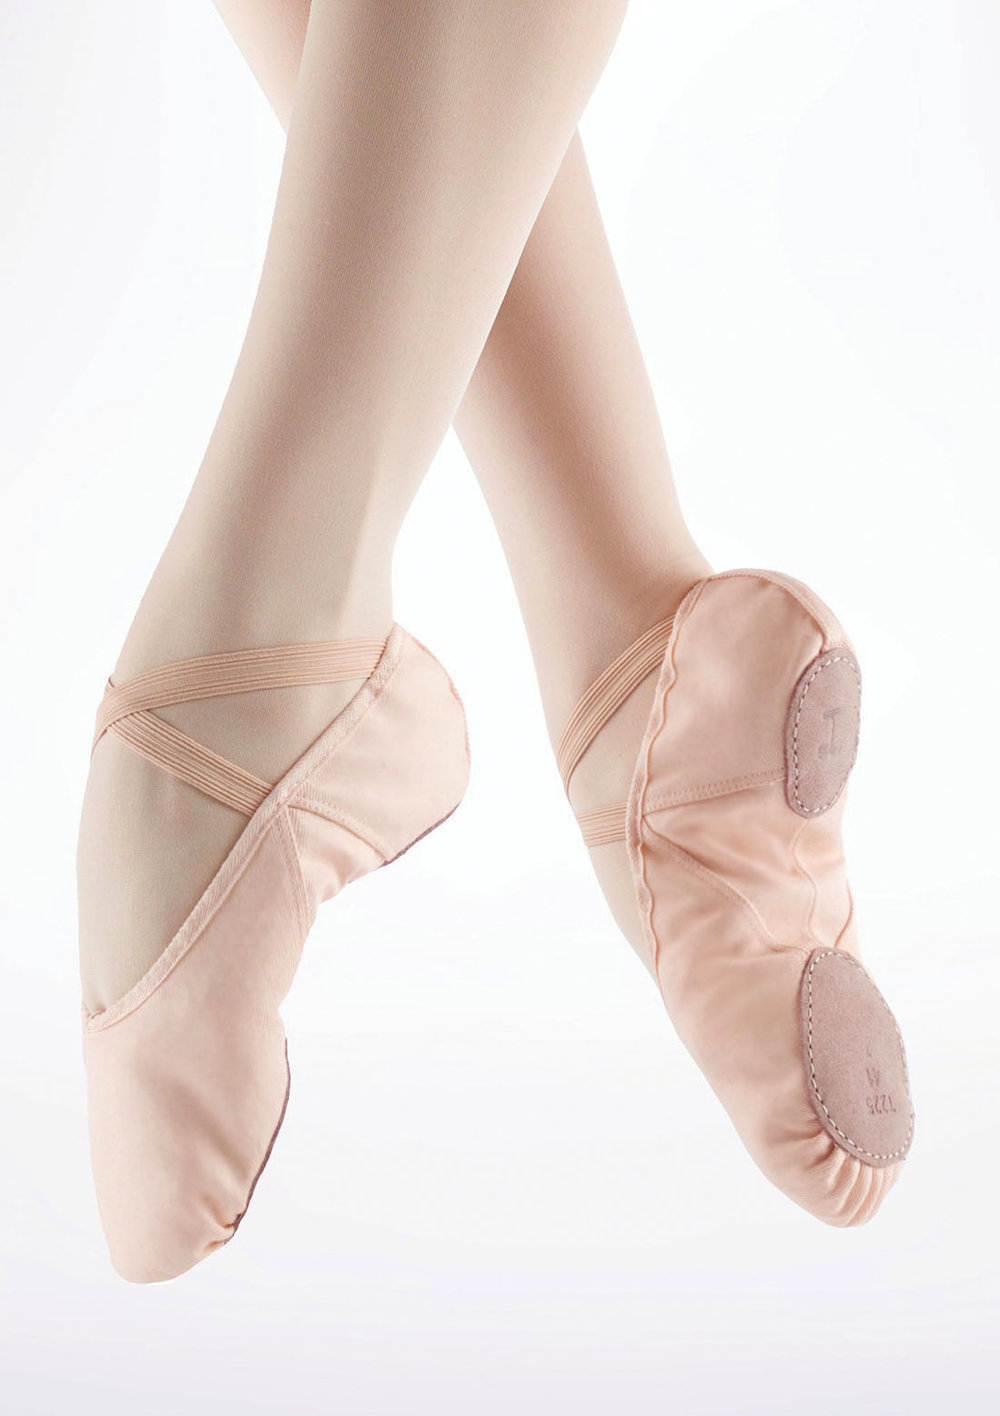 Professional Repetto soft ballet shoes with split sole;